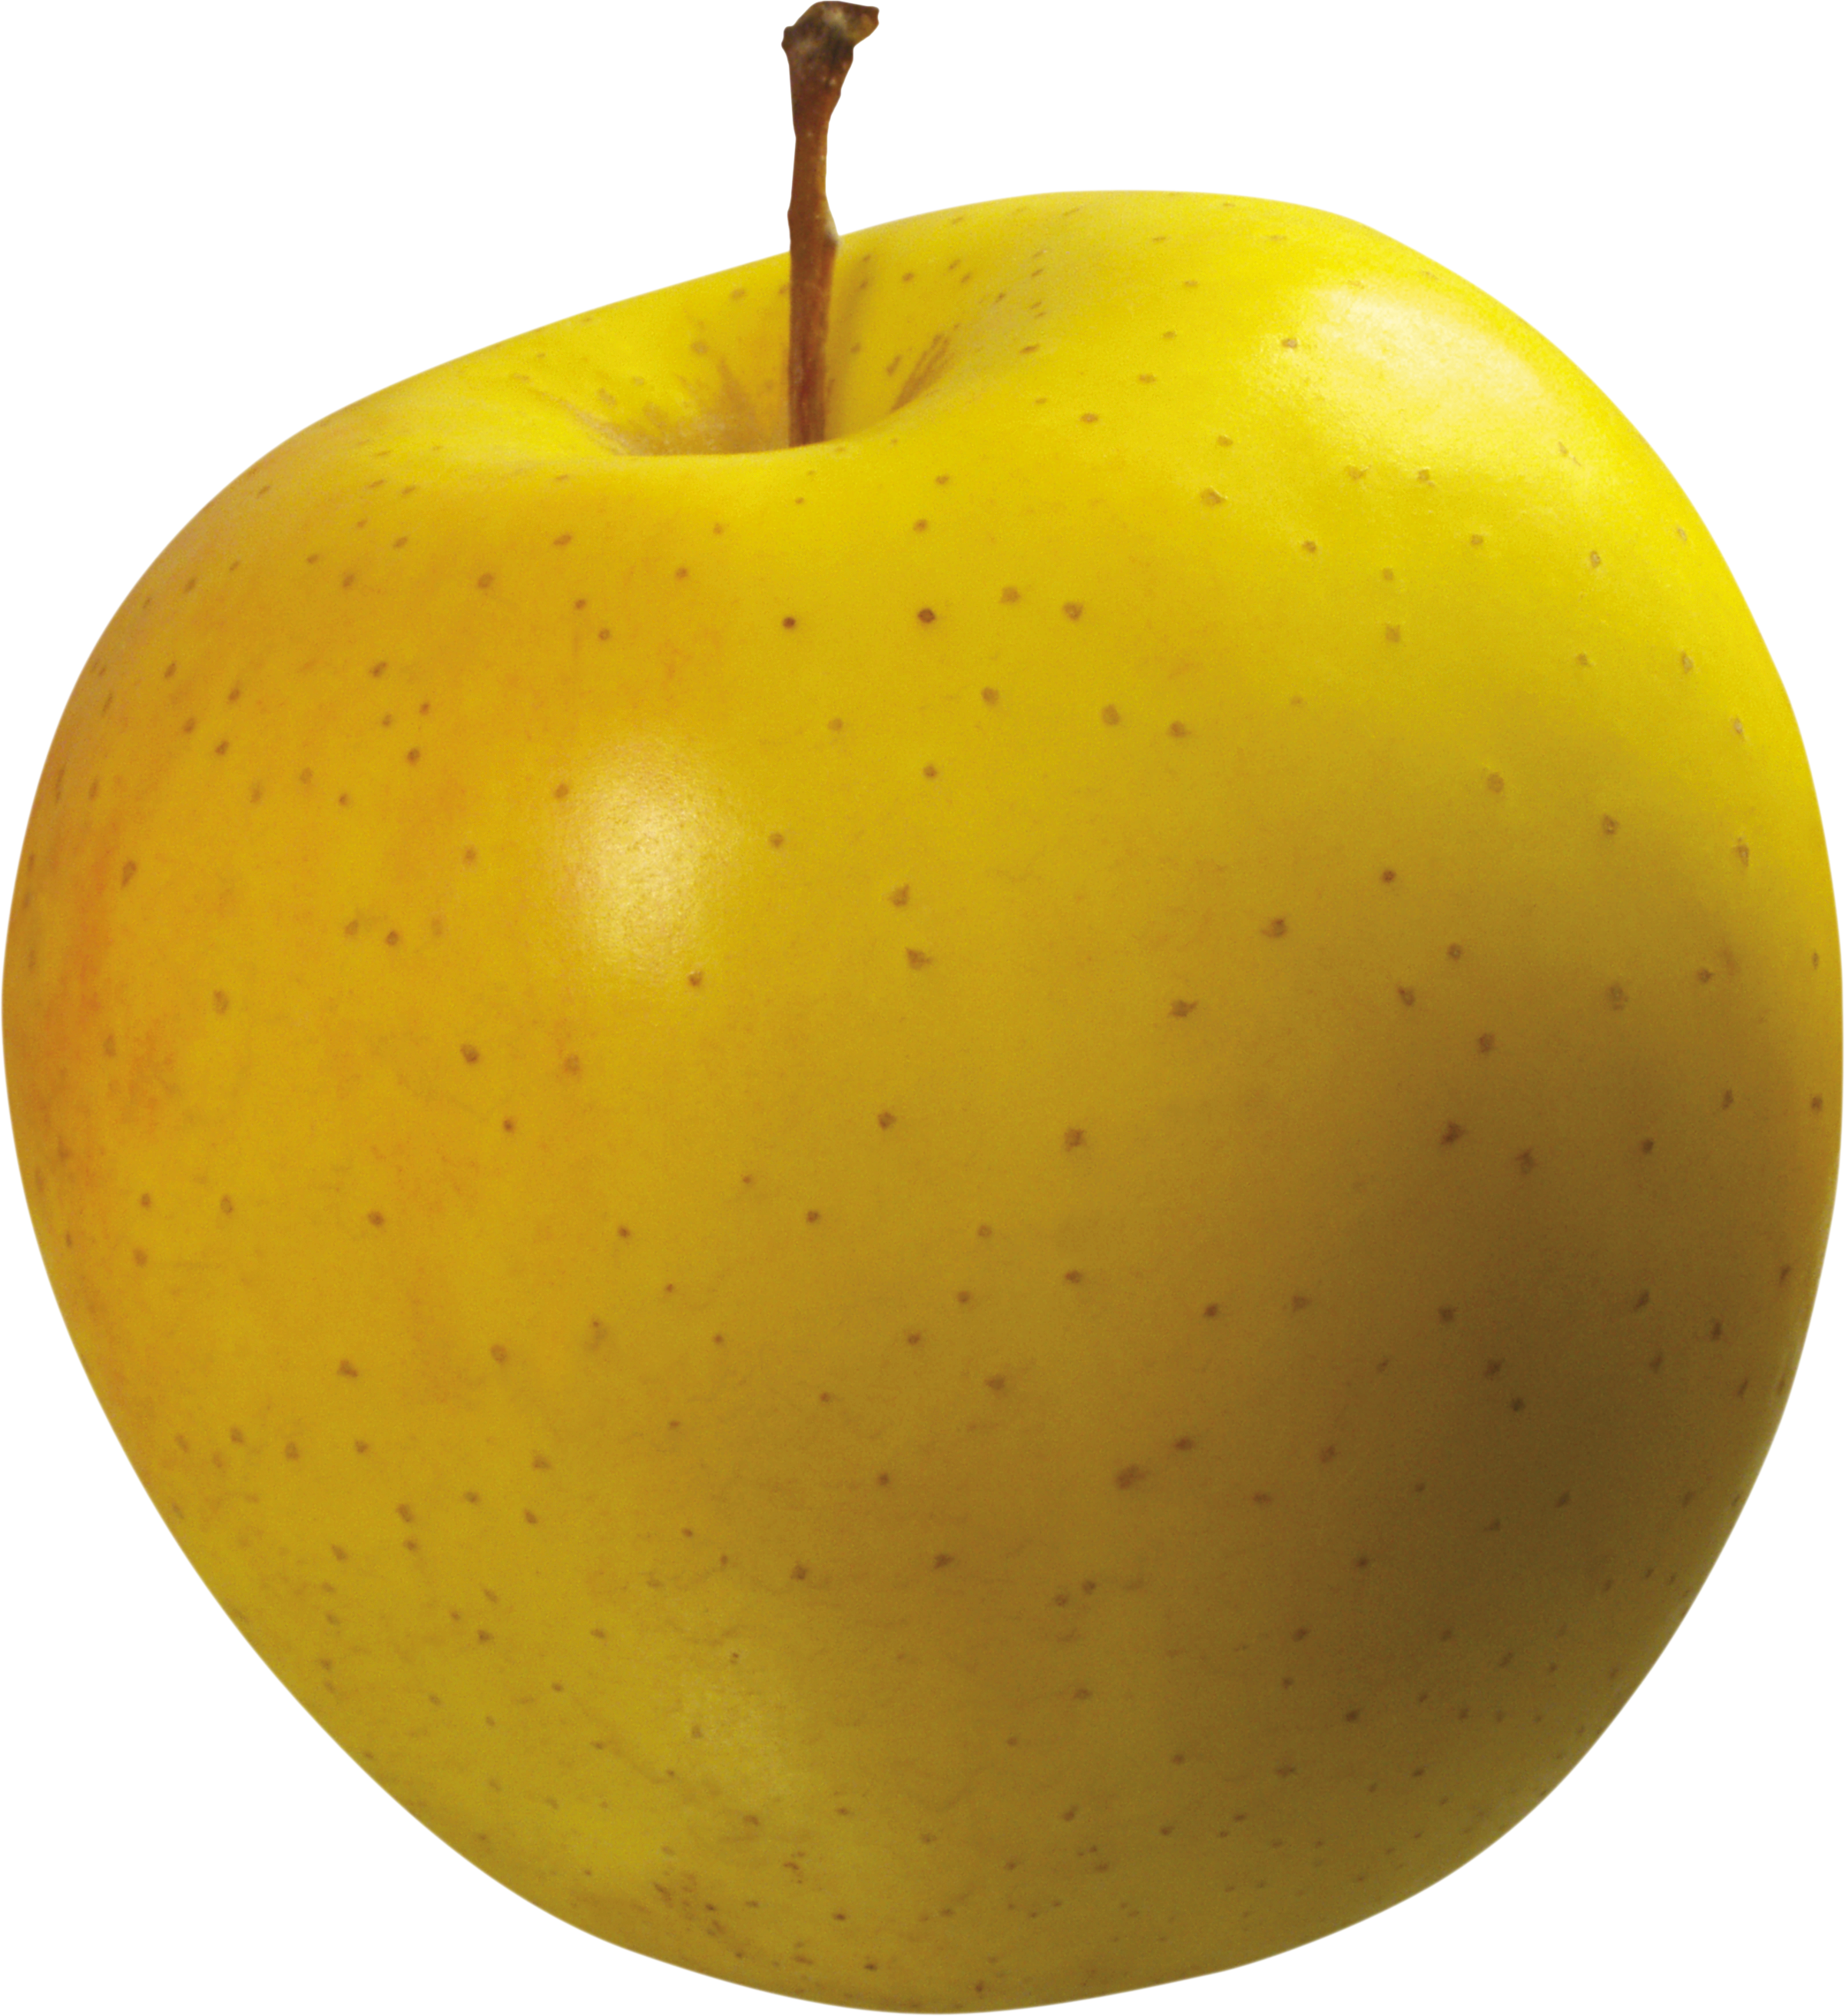 Yellow apples clipart png. Apple s image purepng